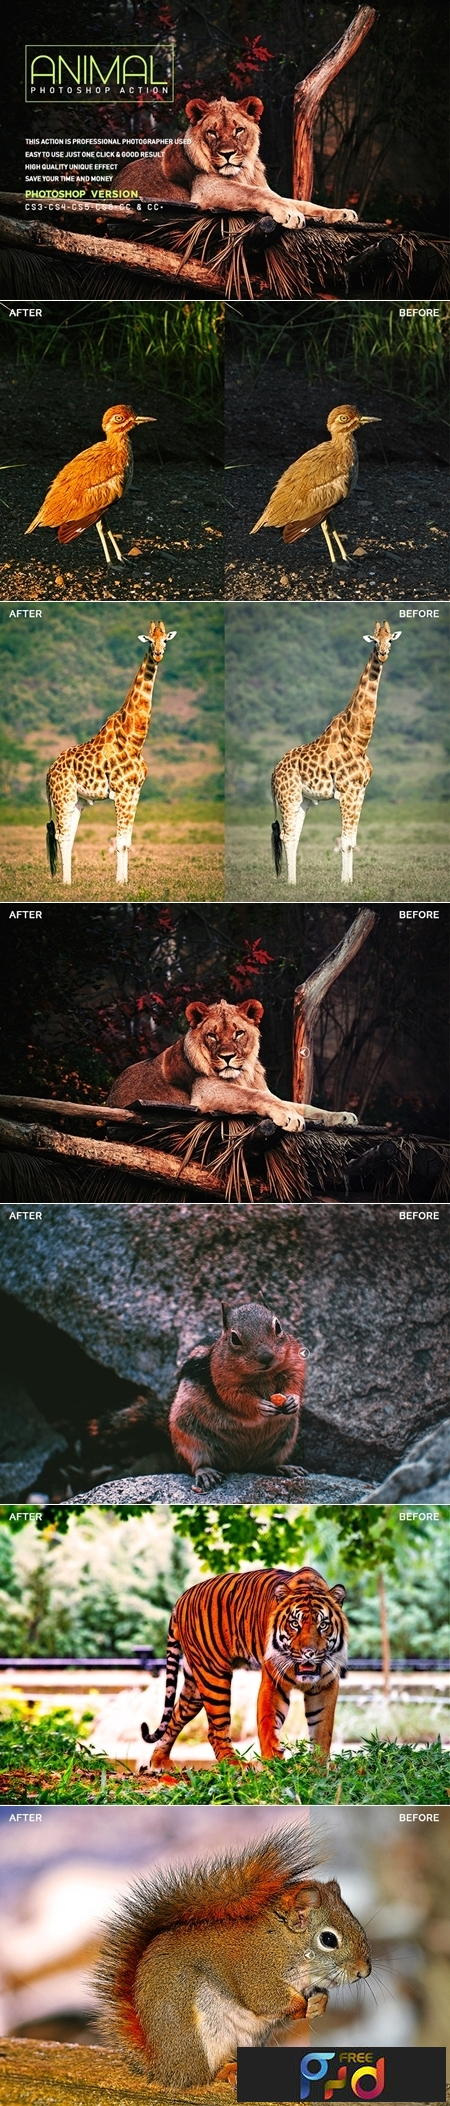 Animal Photoshop Action 1